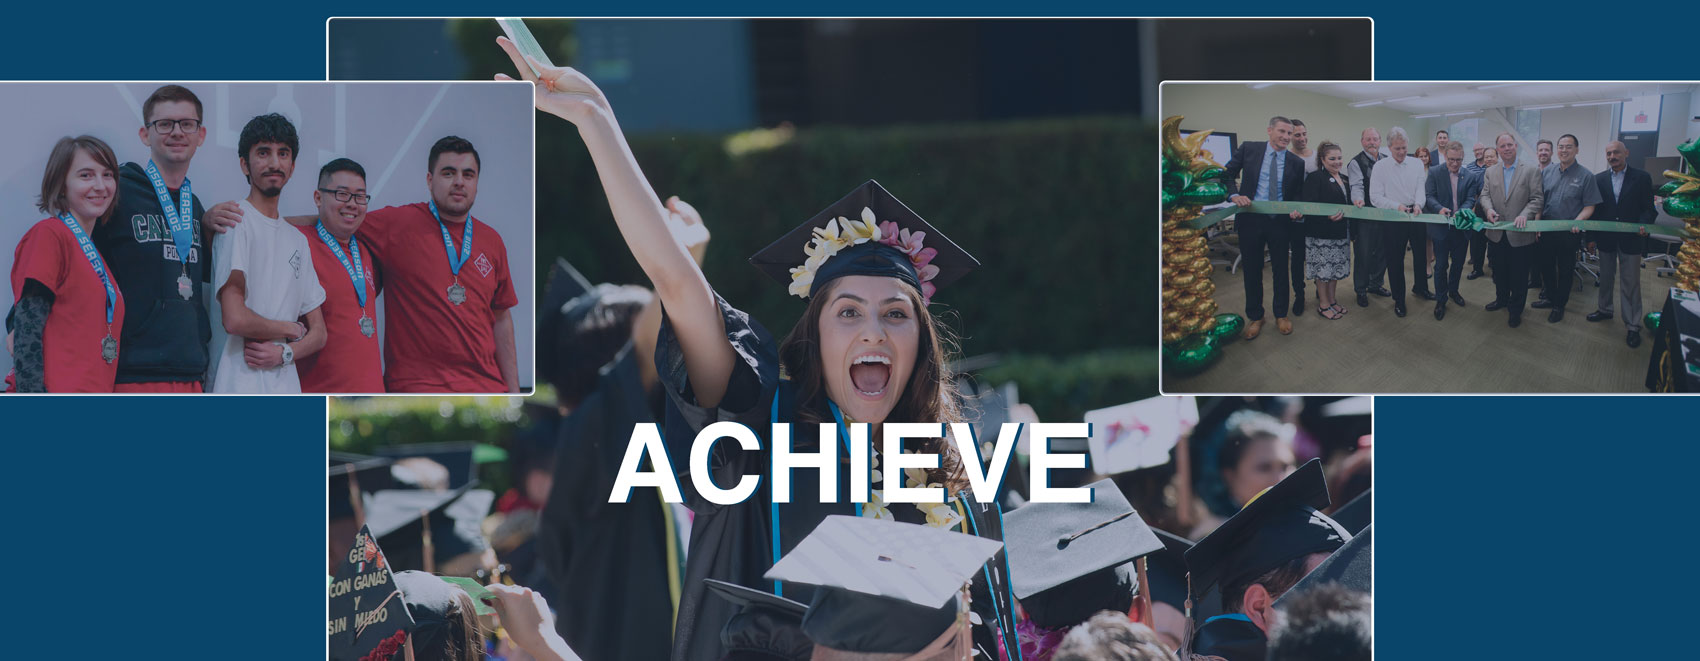 Three-immage collage with five students wearing medals on stage left, woman in graduation cap celebrating at commencement middle and group cutting ribbon on right with achieve spelled across